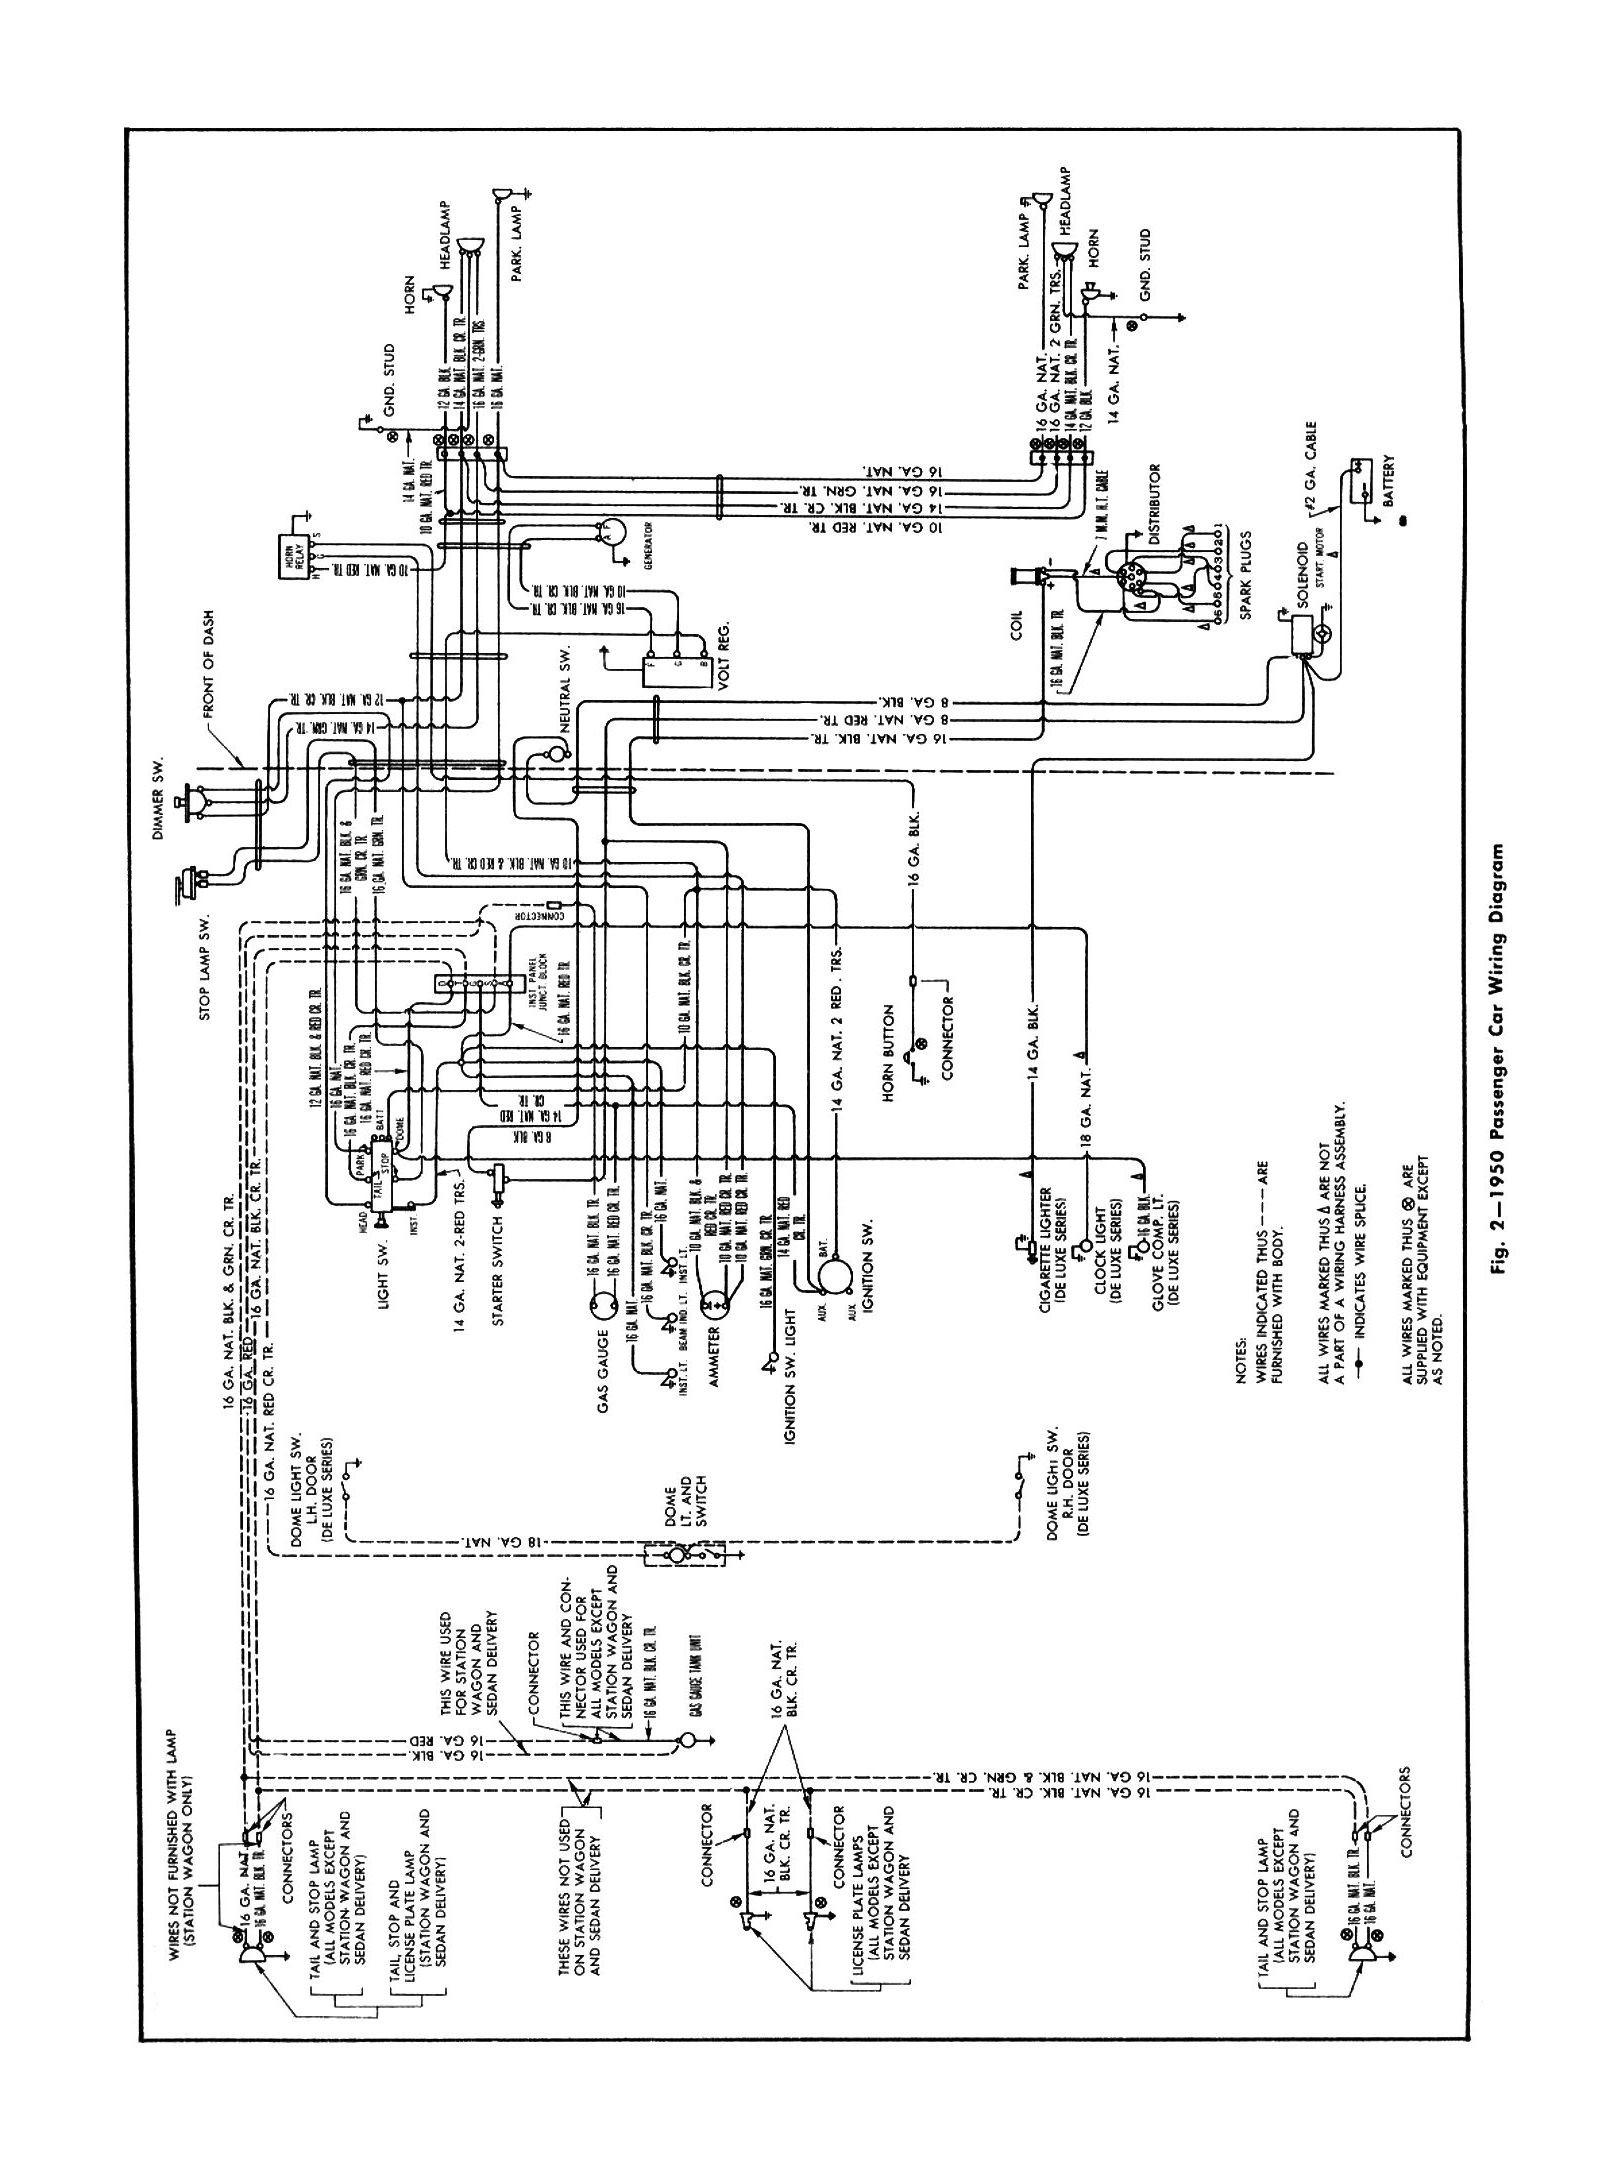 50car 1950 chevy truck wiring harness on 1950 download wirning diagrams gmc truck electrical wiring diagrams at bayanpartner.co